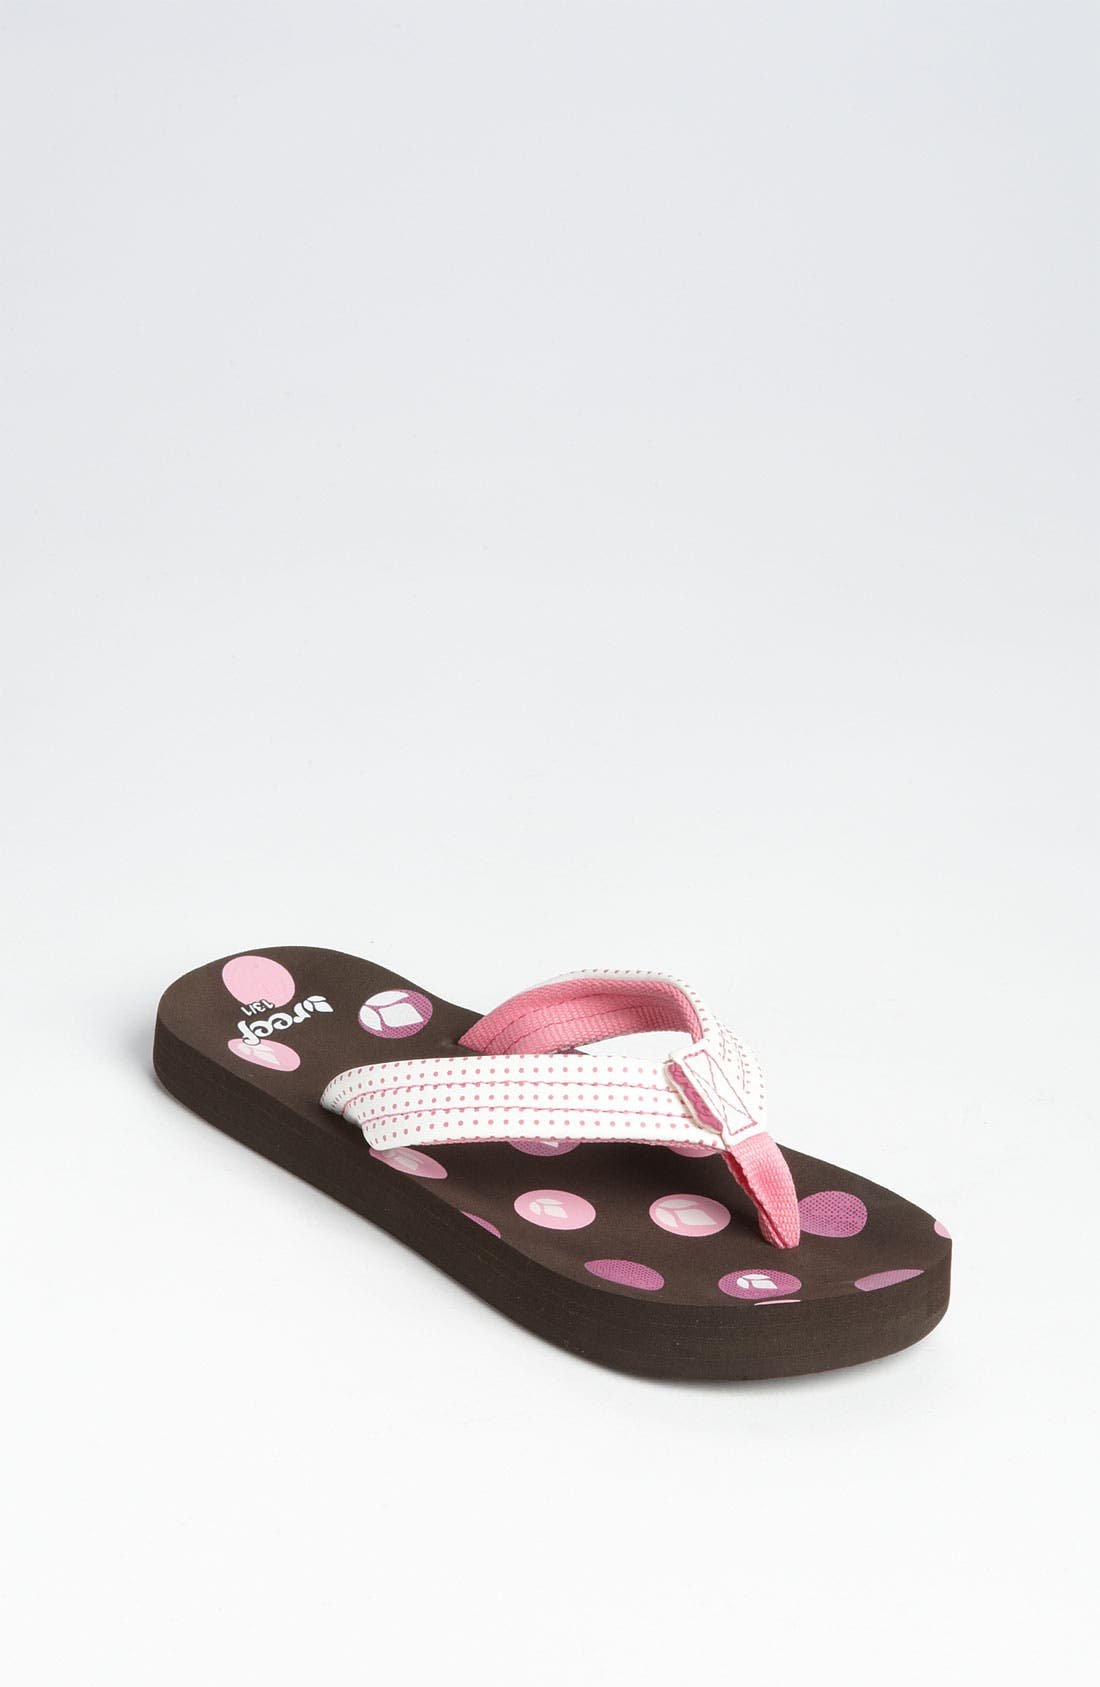 Main Image - Reef 'Little Ahi' Sandal (Walker, Toddler, Little Kid & Big Kid)